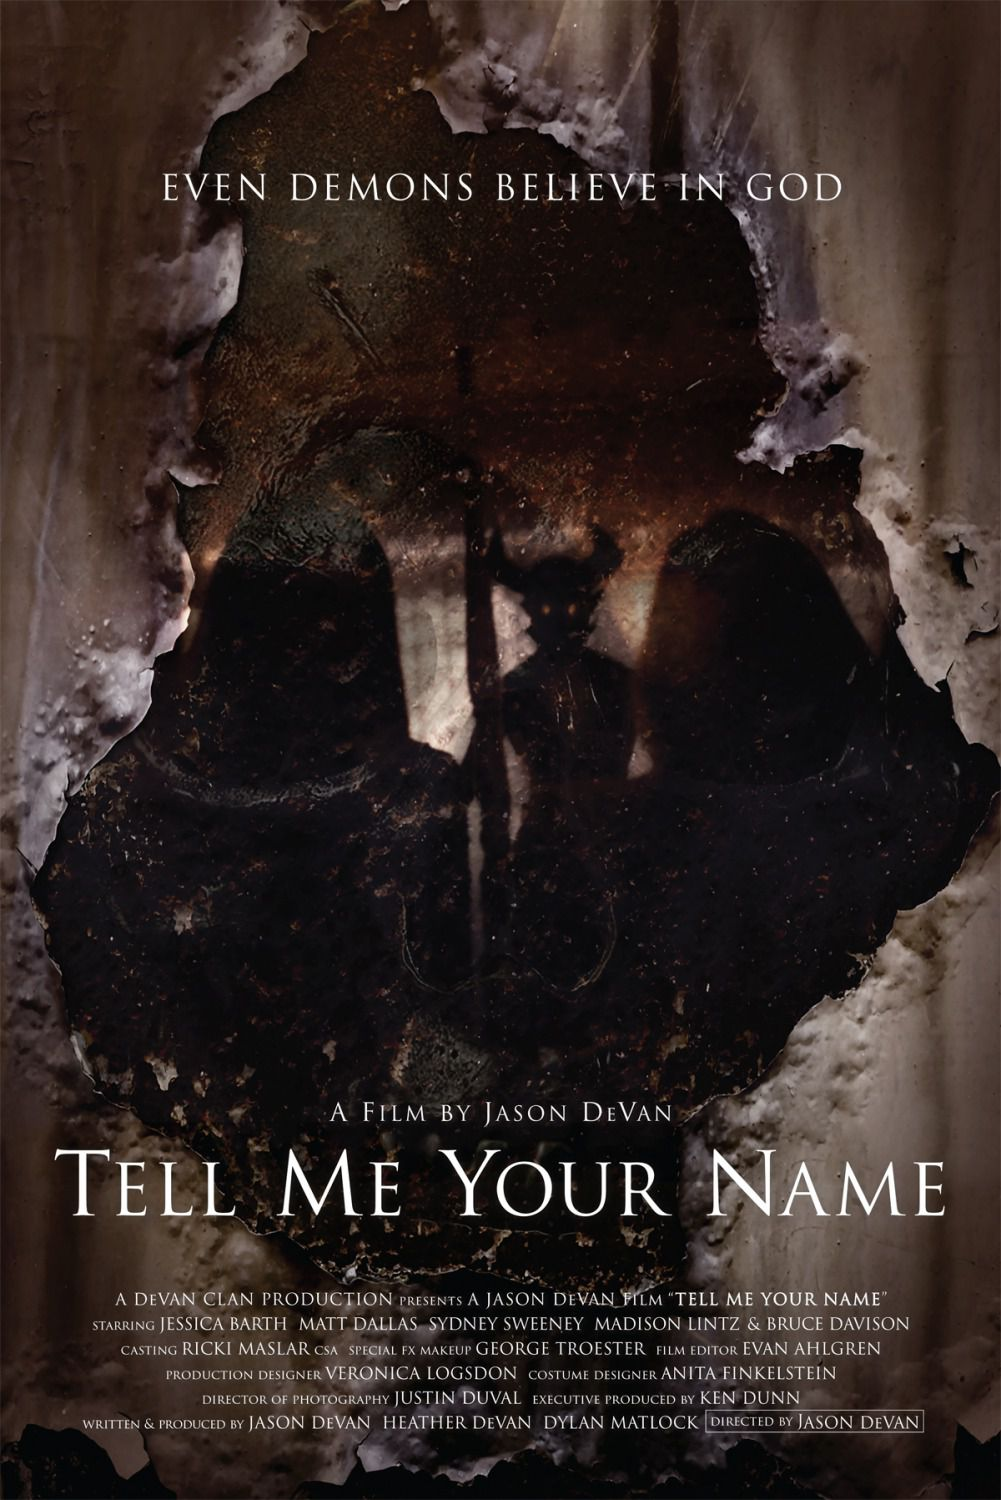 Tell me Your Name - Even demons believe in God - Cast: Jessica Barth, Matt Dallas, Sydney Sweeney, Madison Lintz, Bruce Davidson - horror film poster 2018